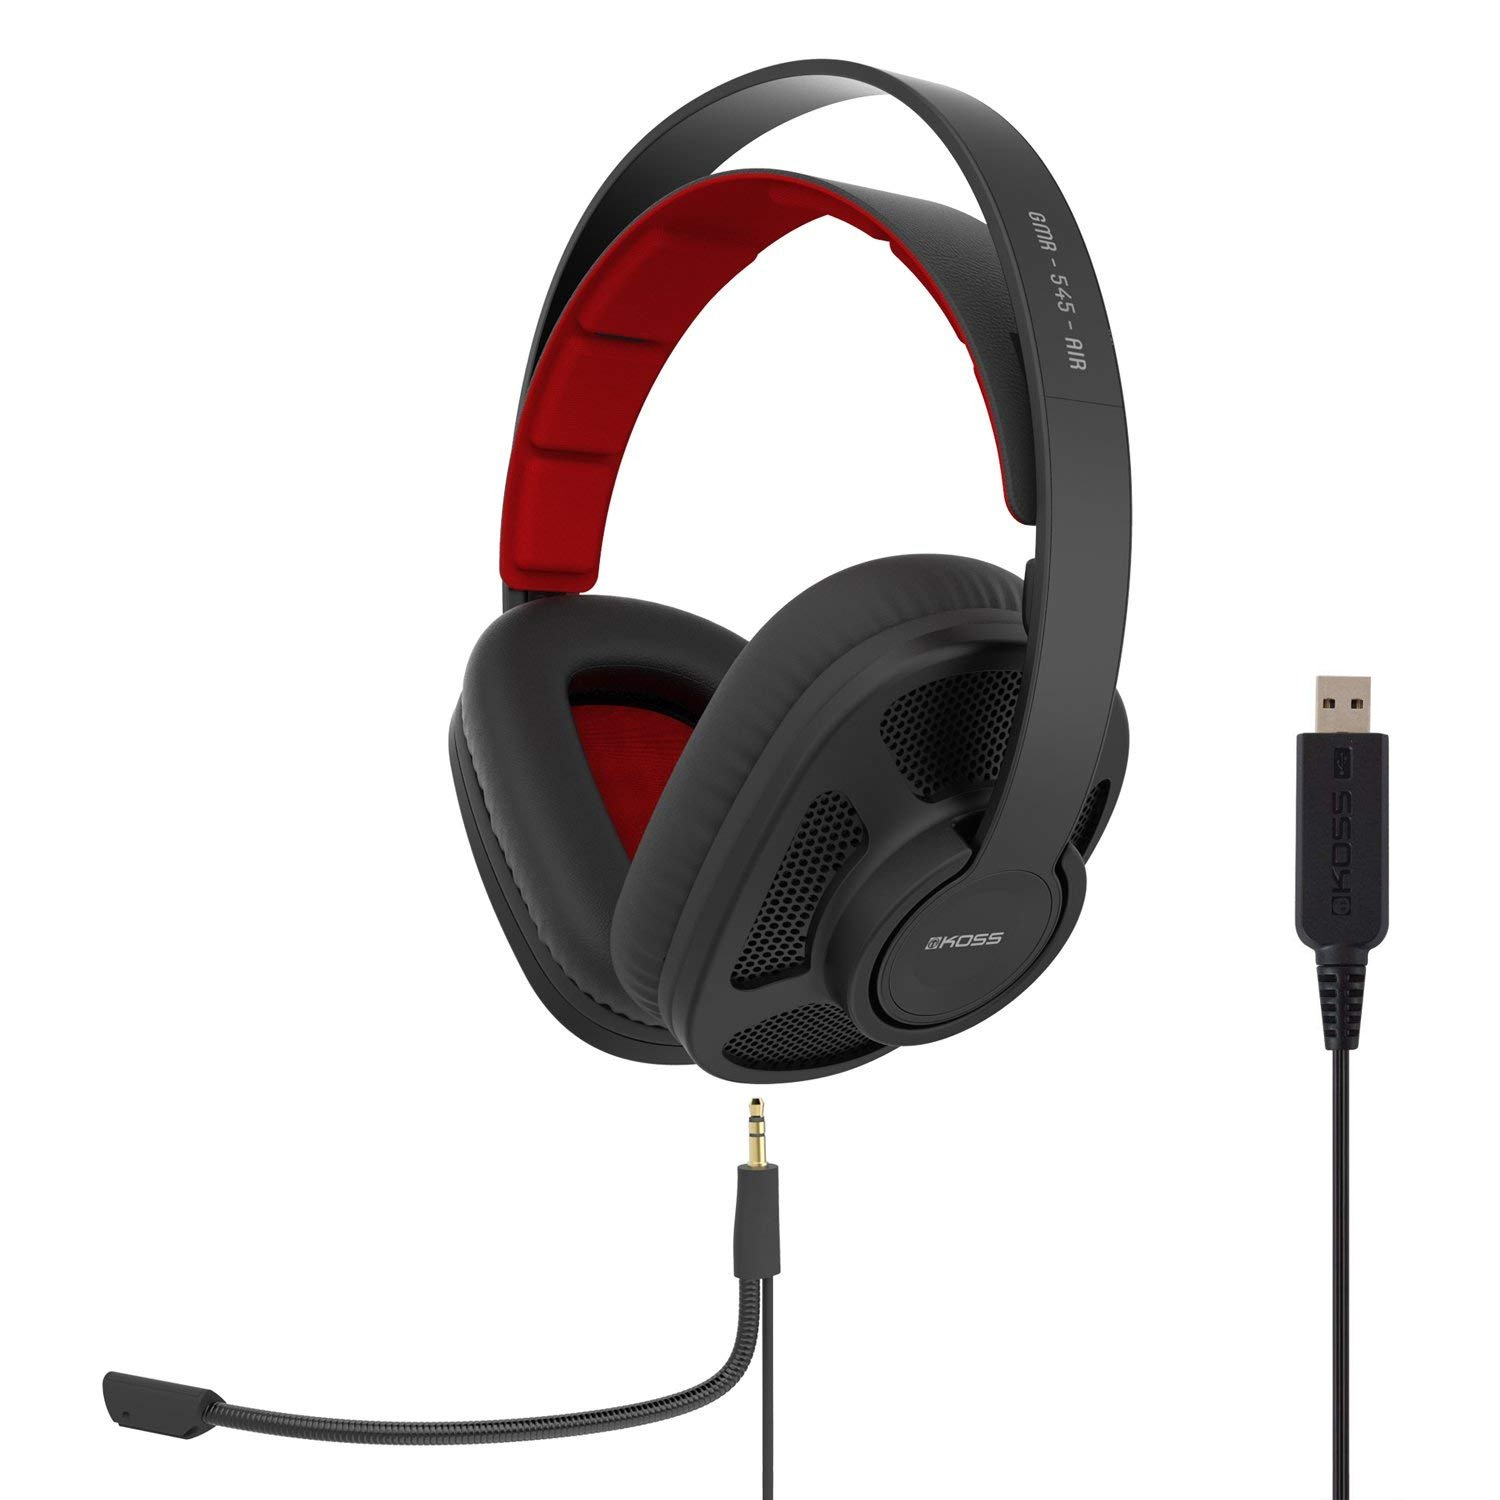 Koss GMR-545-AIR USB Open-Back Gaming Headphones | Detachable Cord Design | Two Cords with Microphones Included | Light Weight | Connects via USB